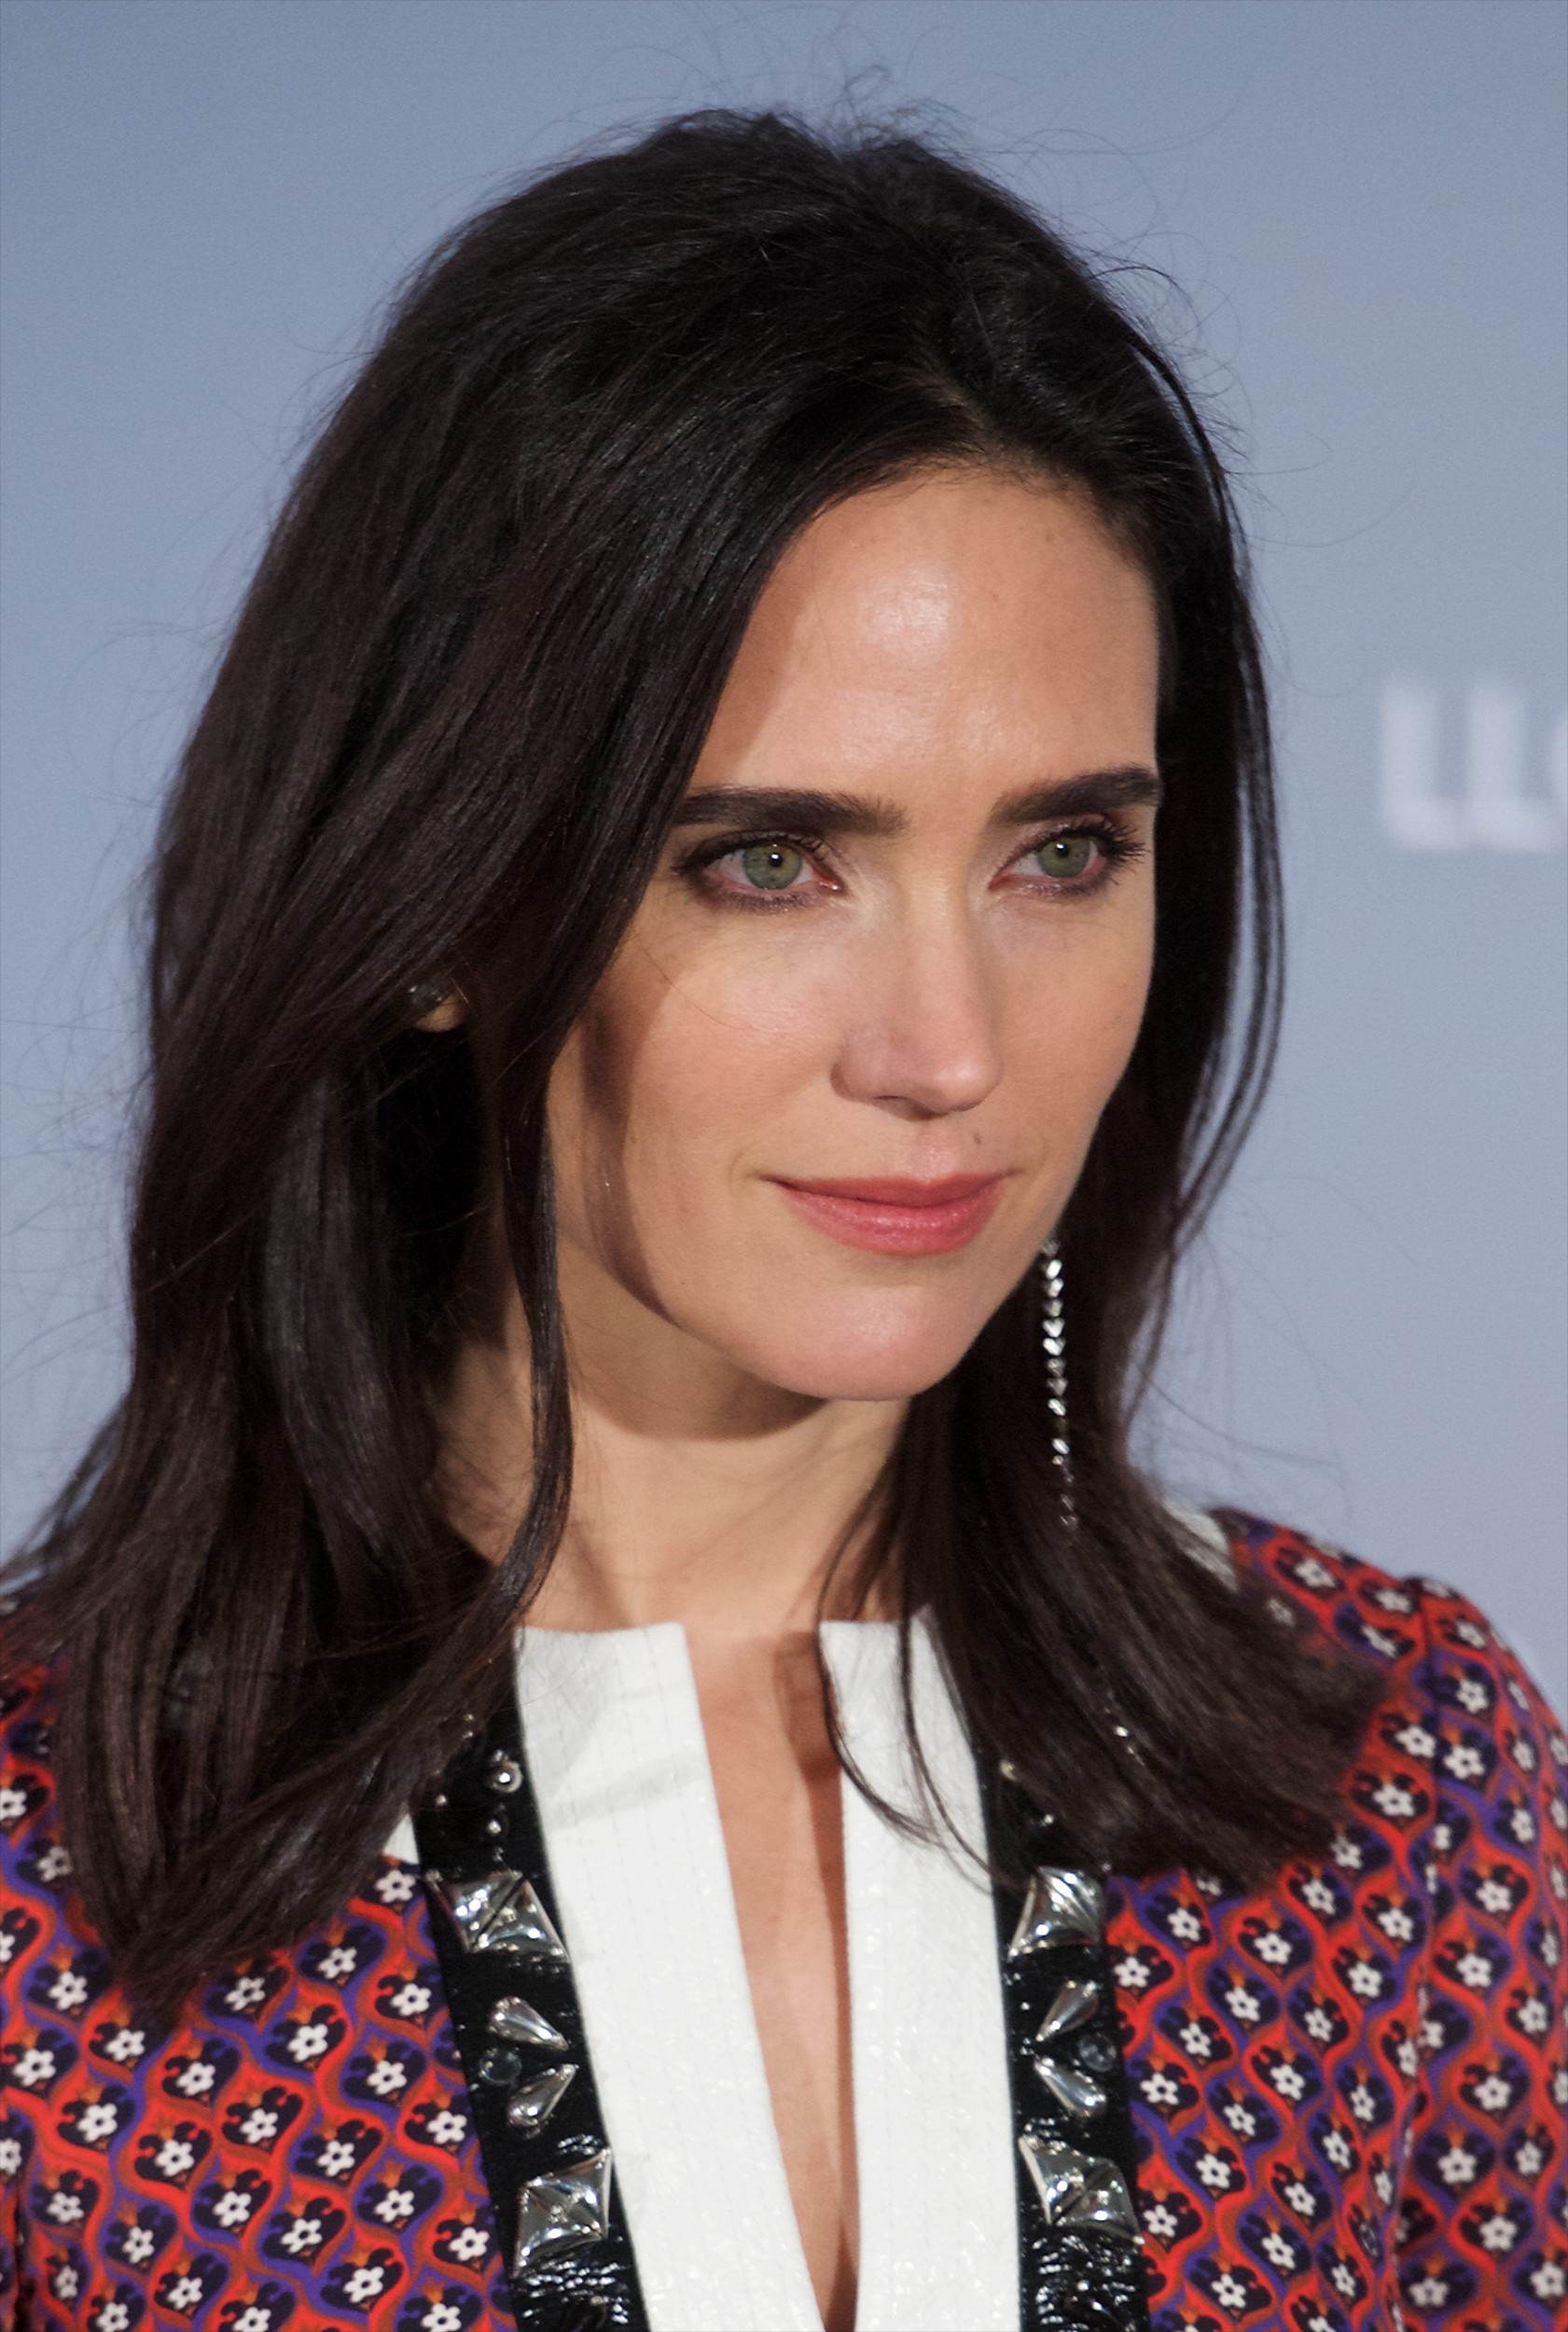 jennifer connelly - photo #12